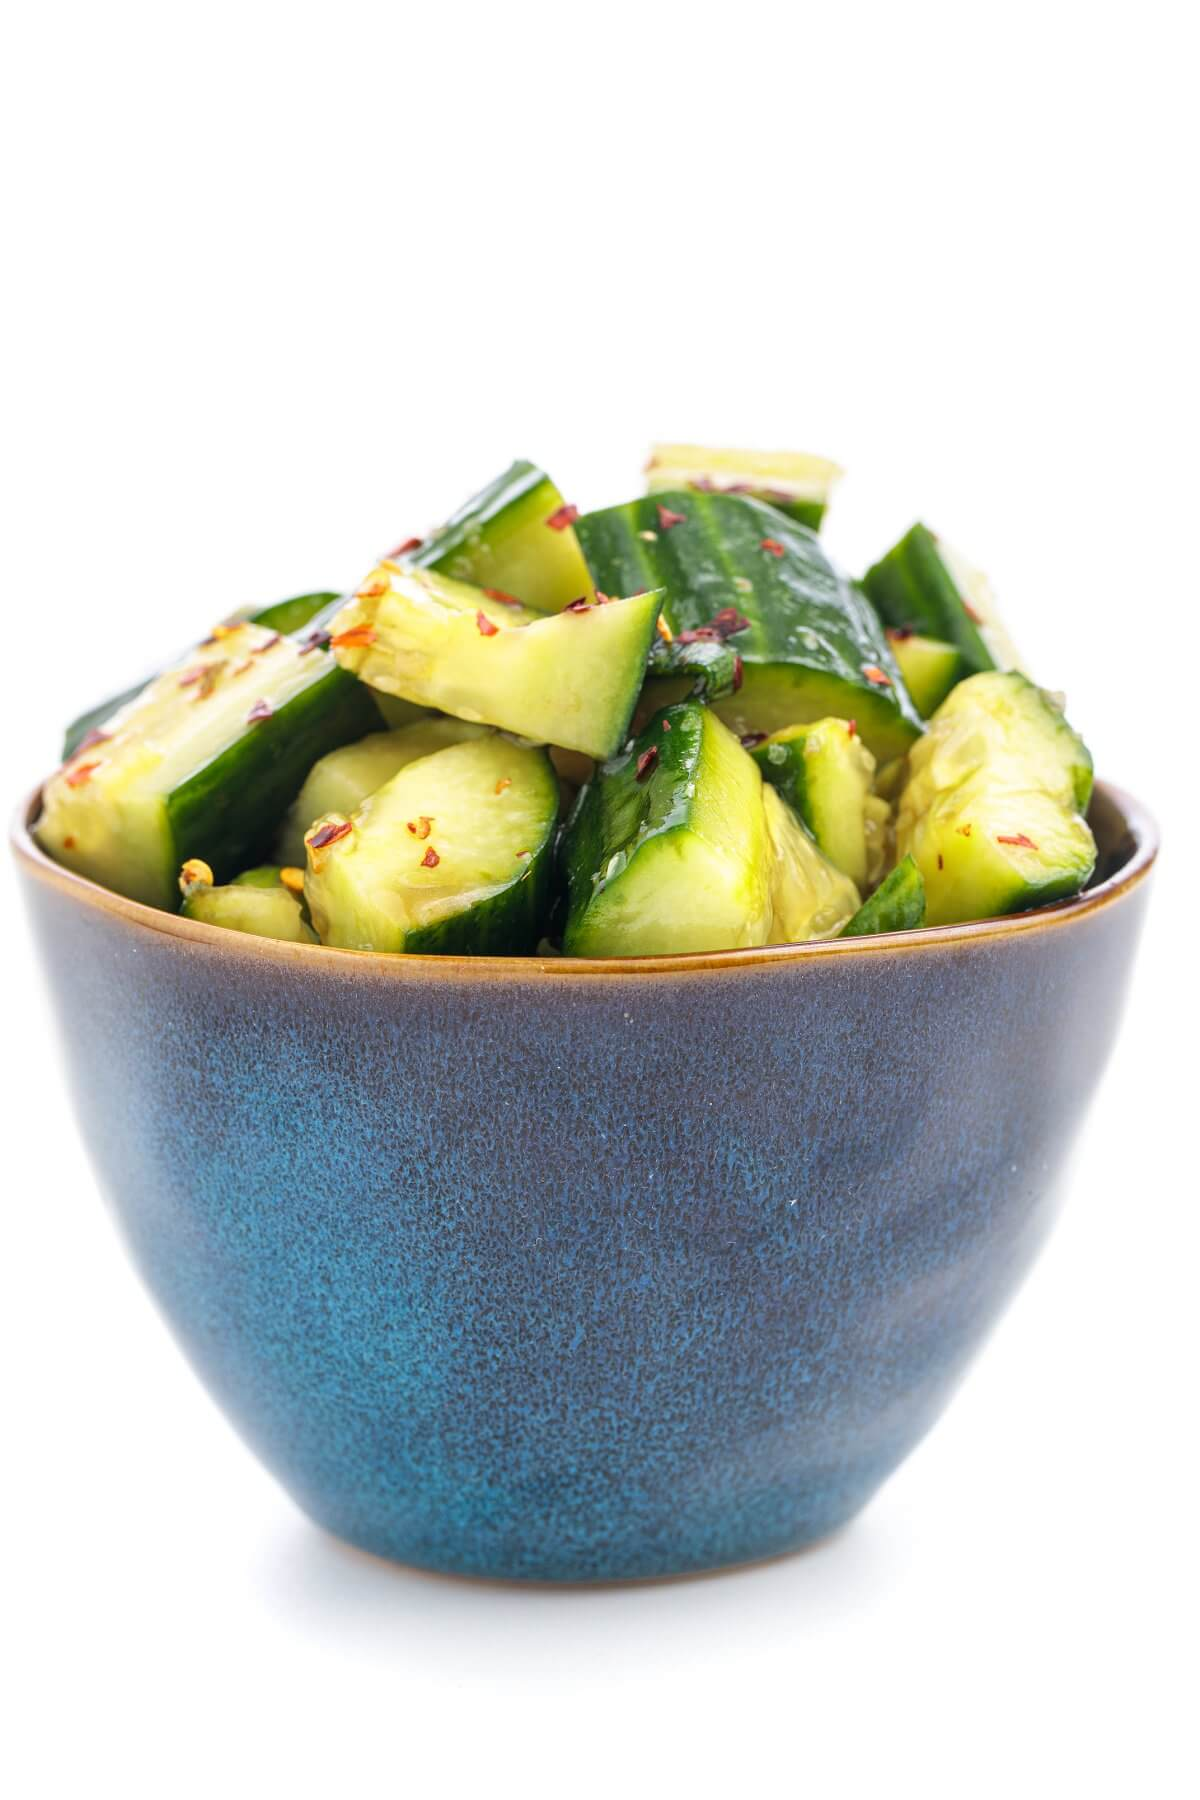 smashed cucumbers in a bowl